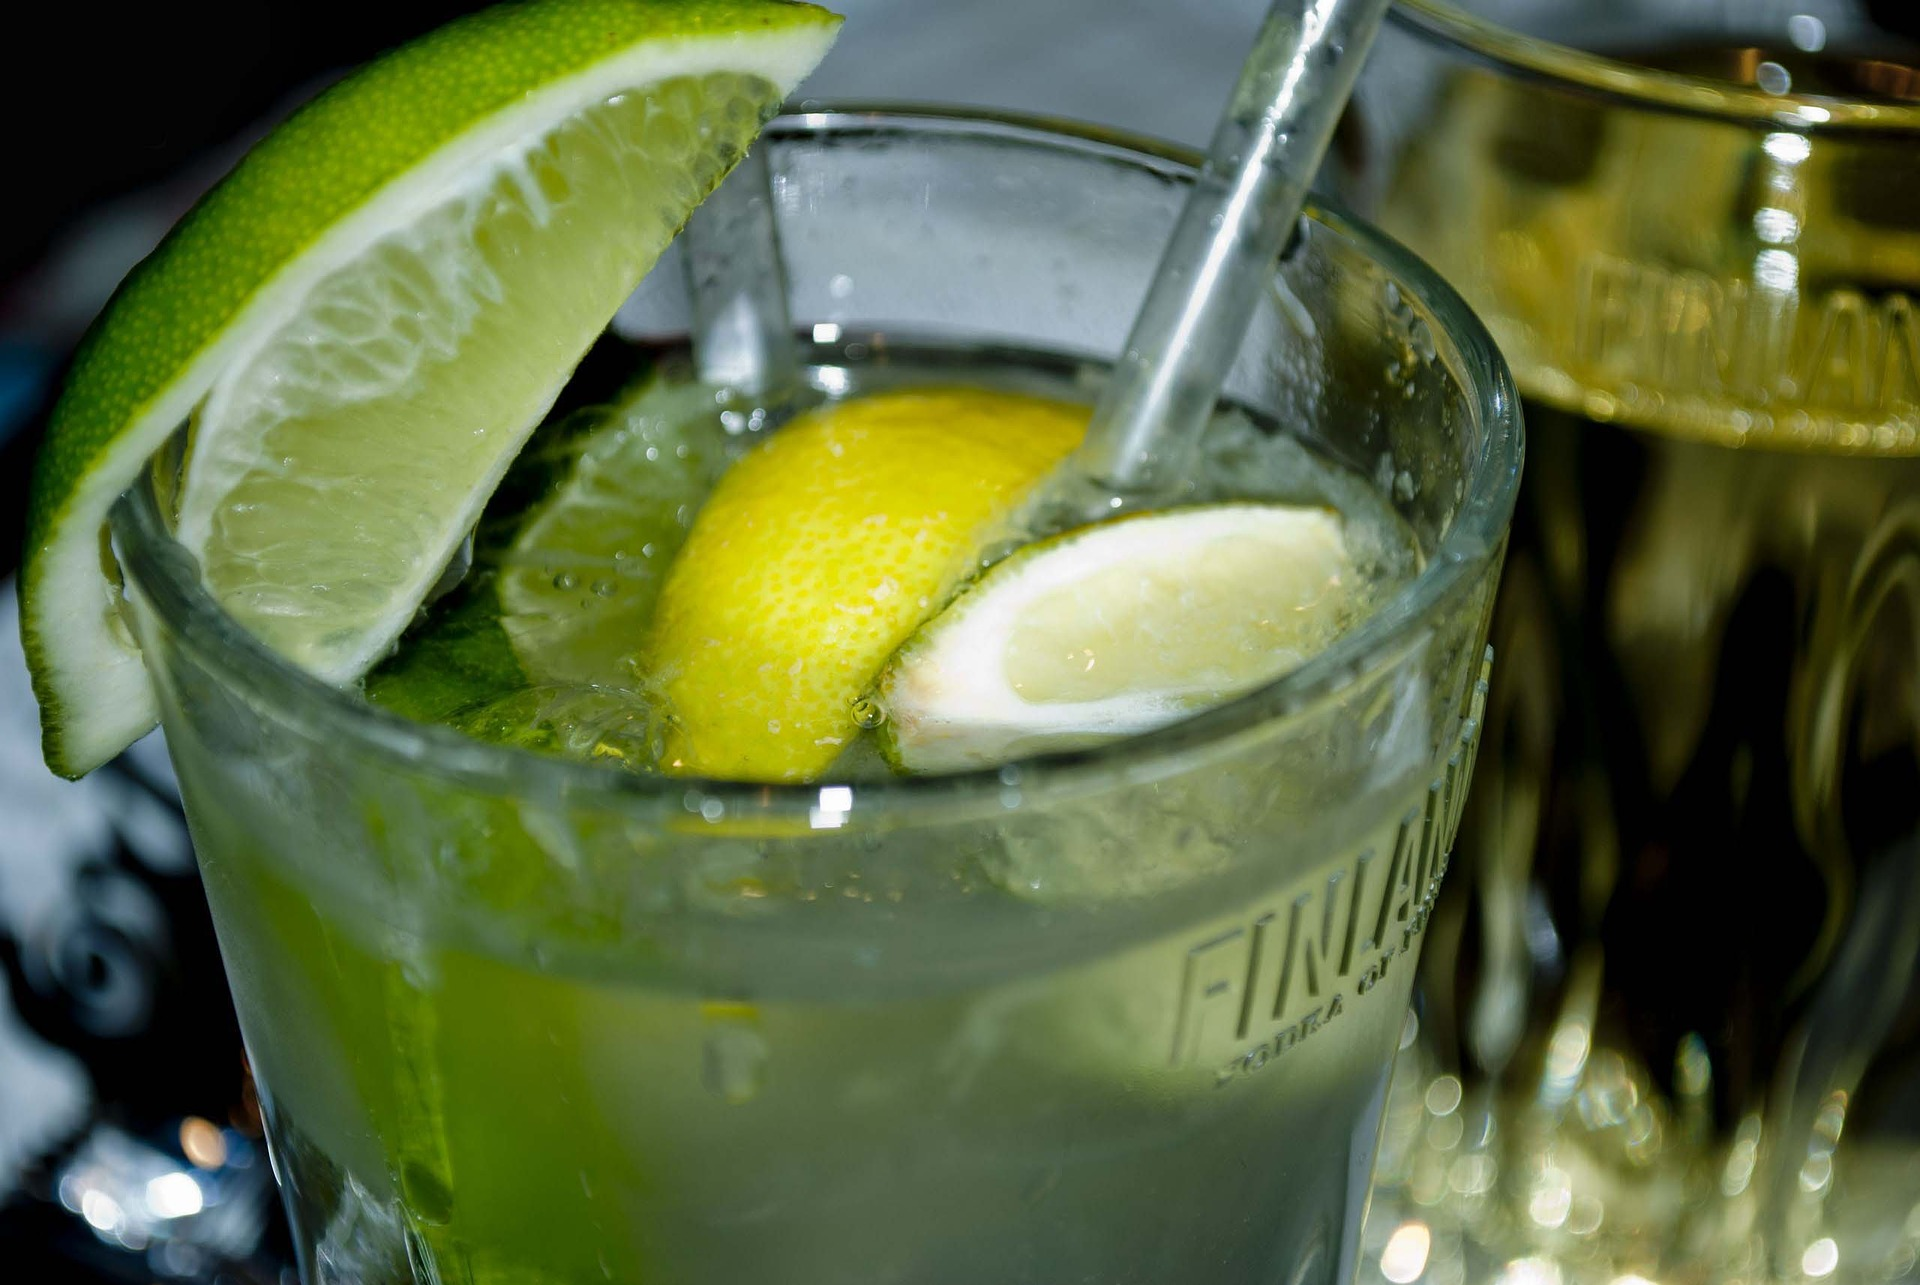 More mixed drinks are made with vodka than any other liquor.